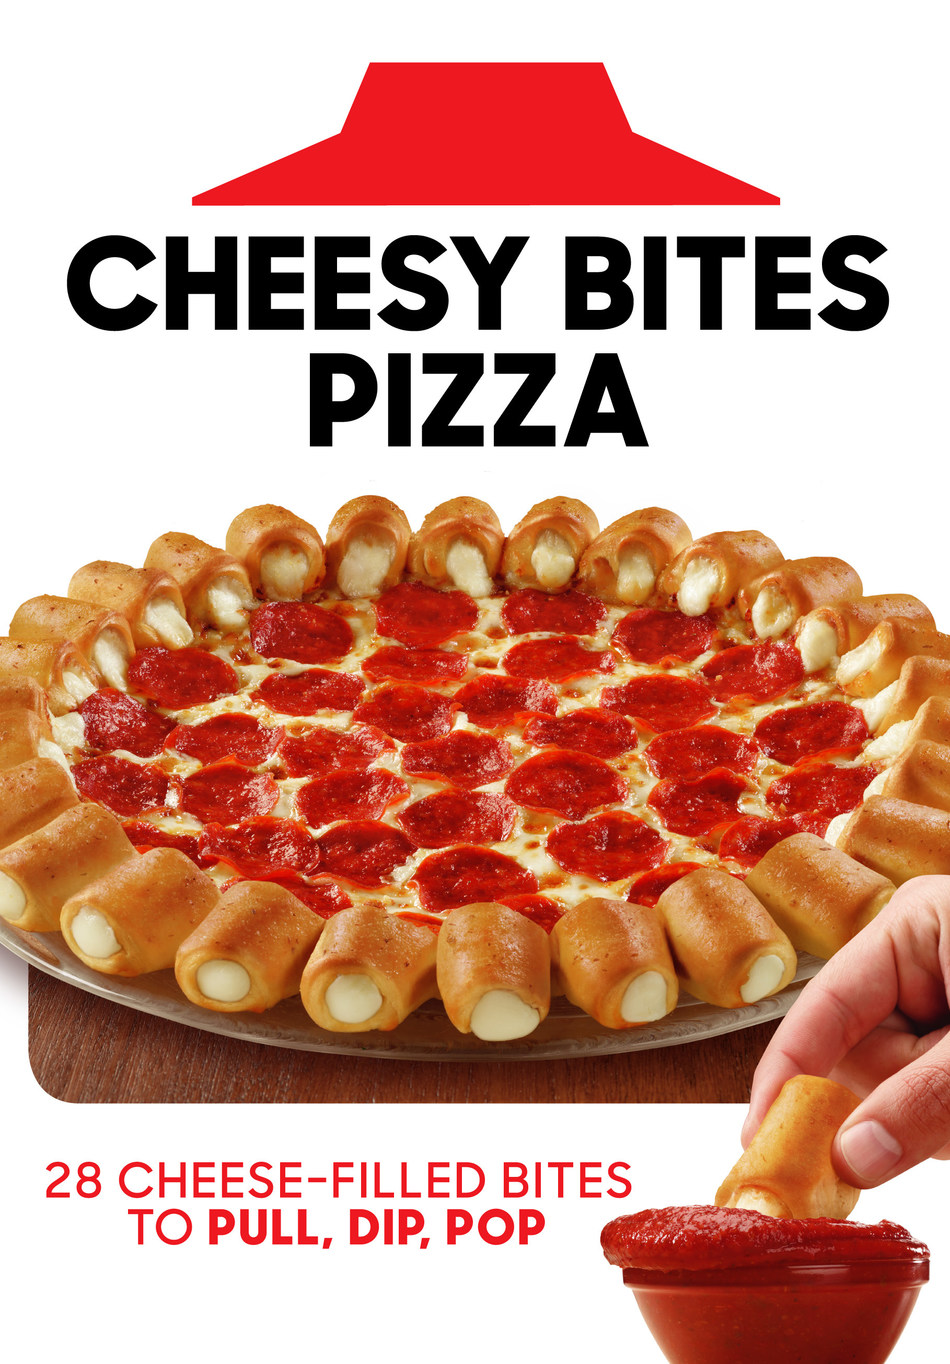 The Cheesy Bites Pizza Is Back At Pizza Hut For A Limited Time